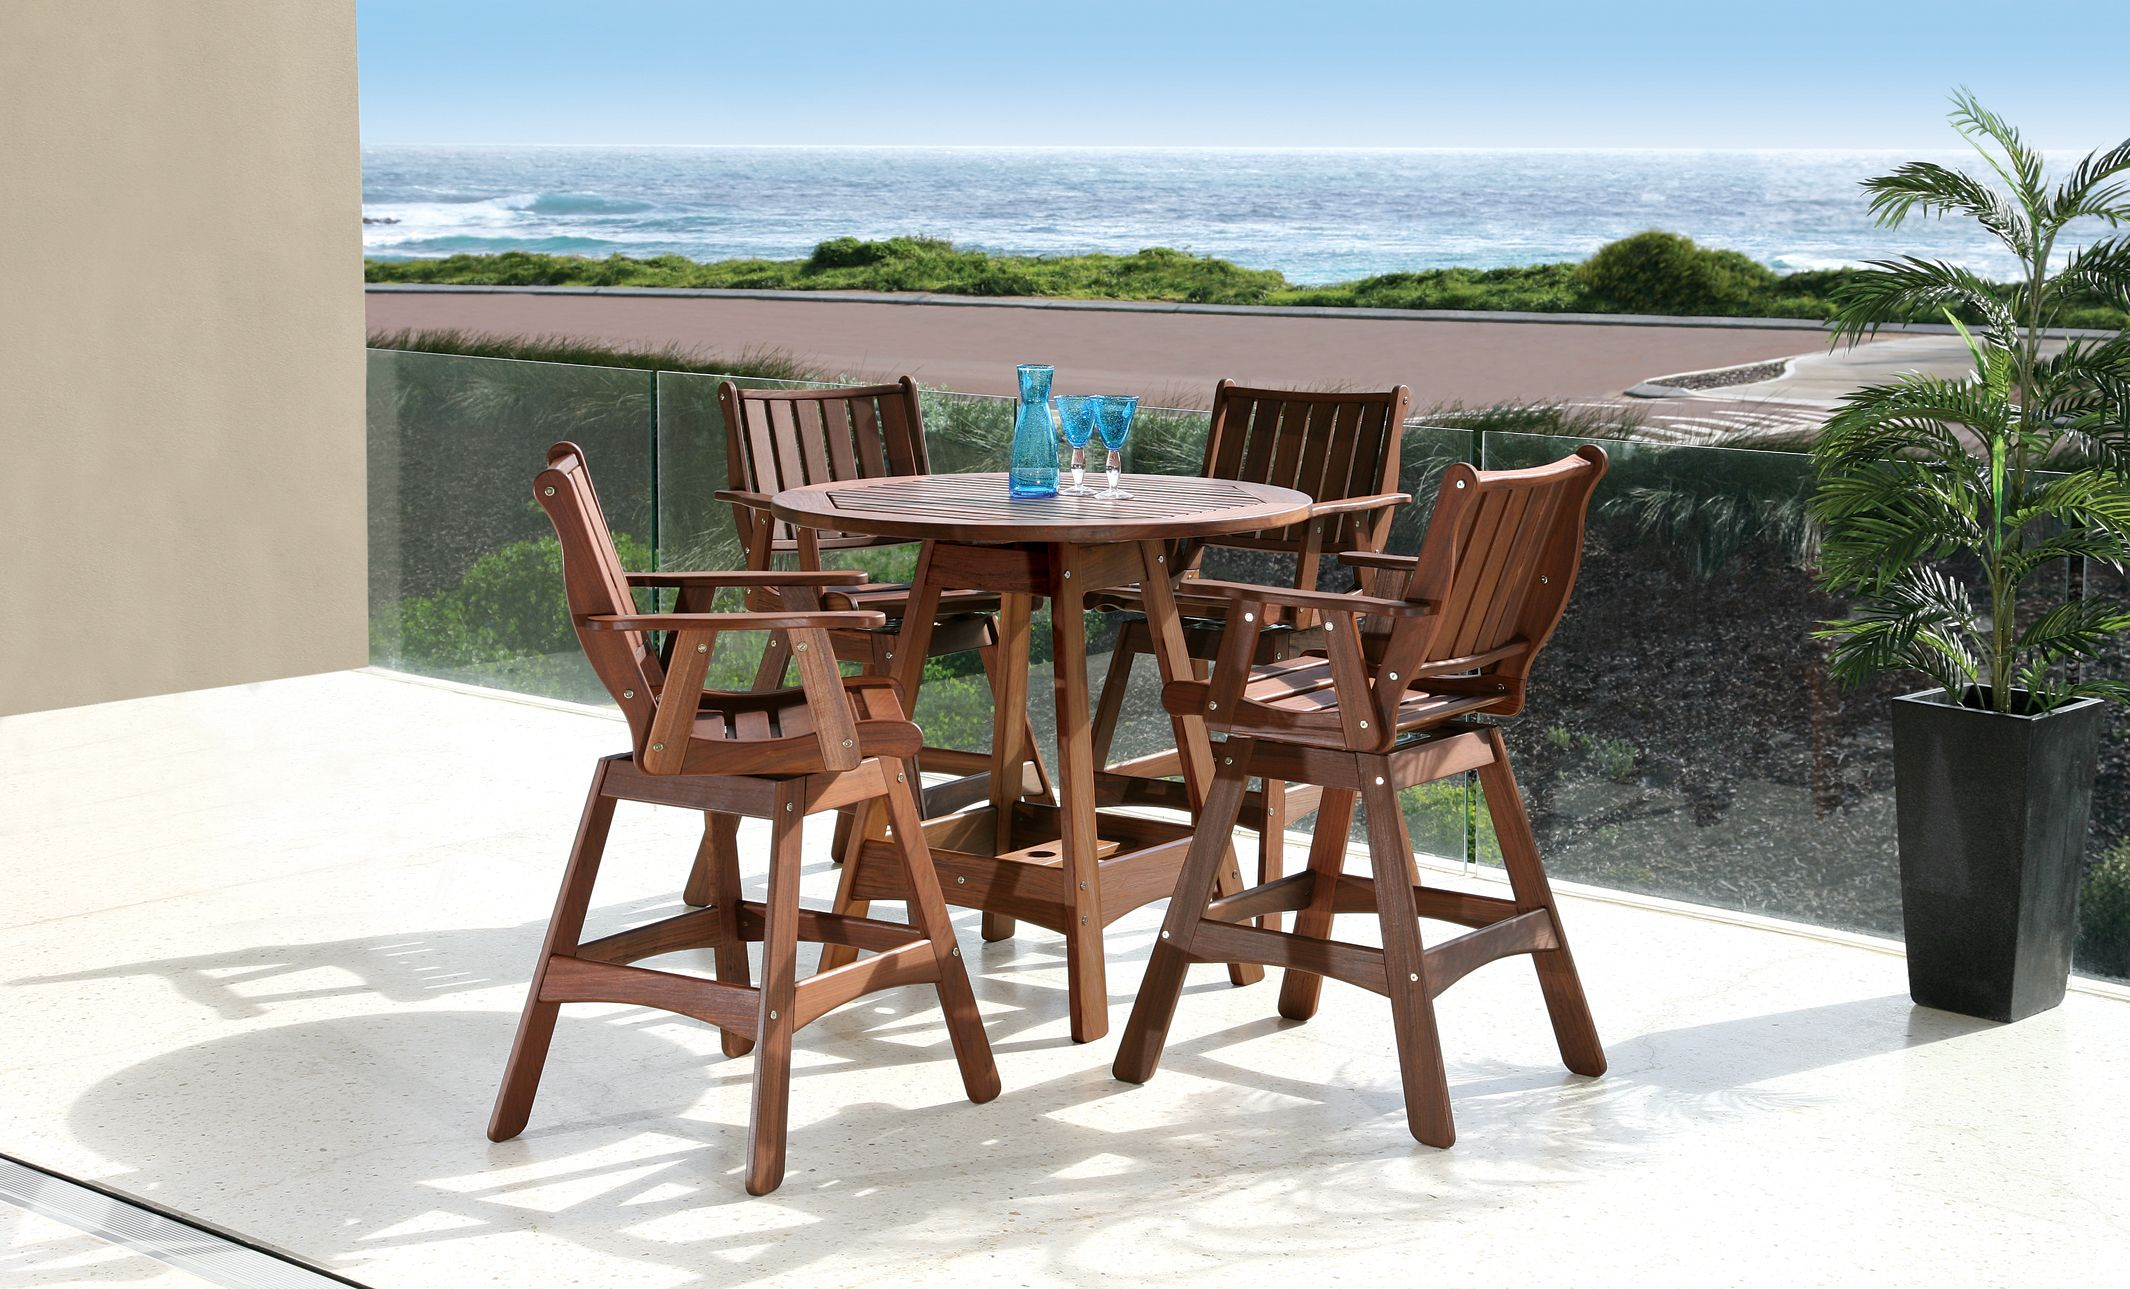 Integra High Dining By Jensen Leisure Patio Furniture Dining